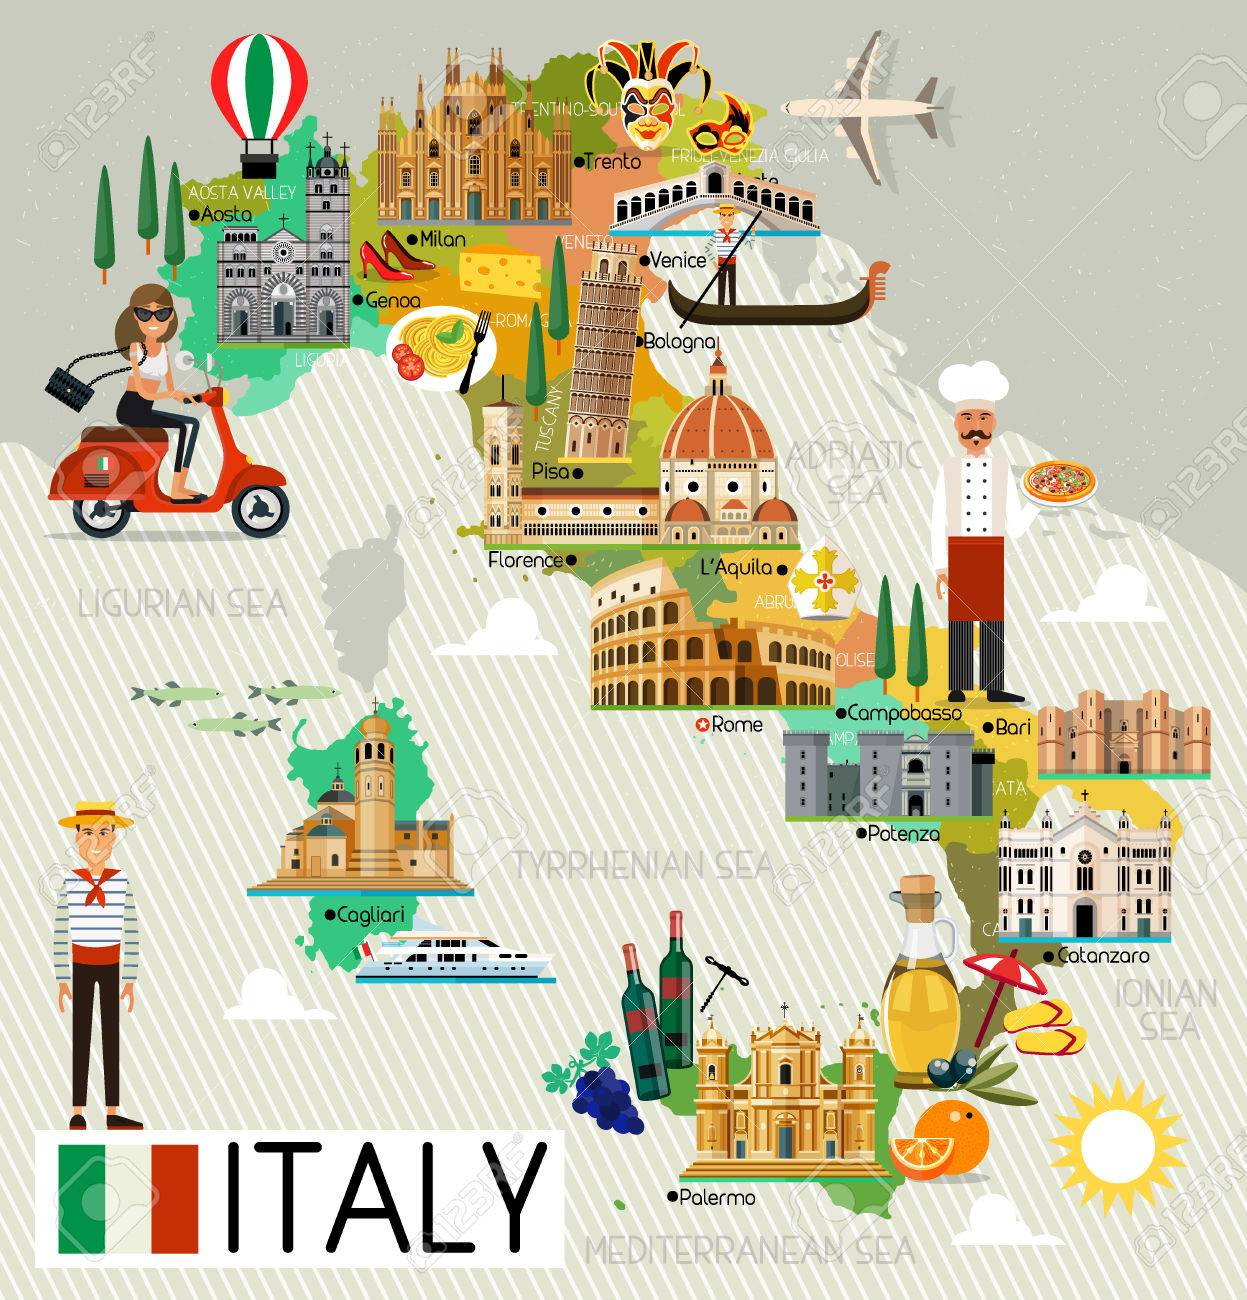 Map Of Italy Images.Italy Travel Map